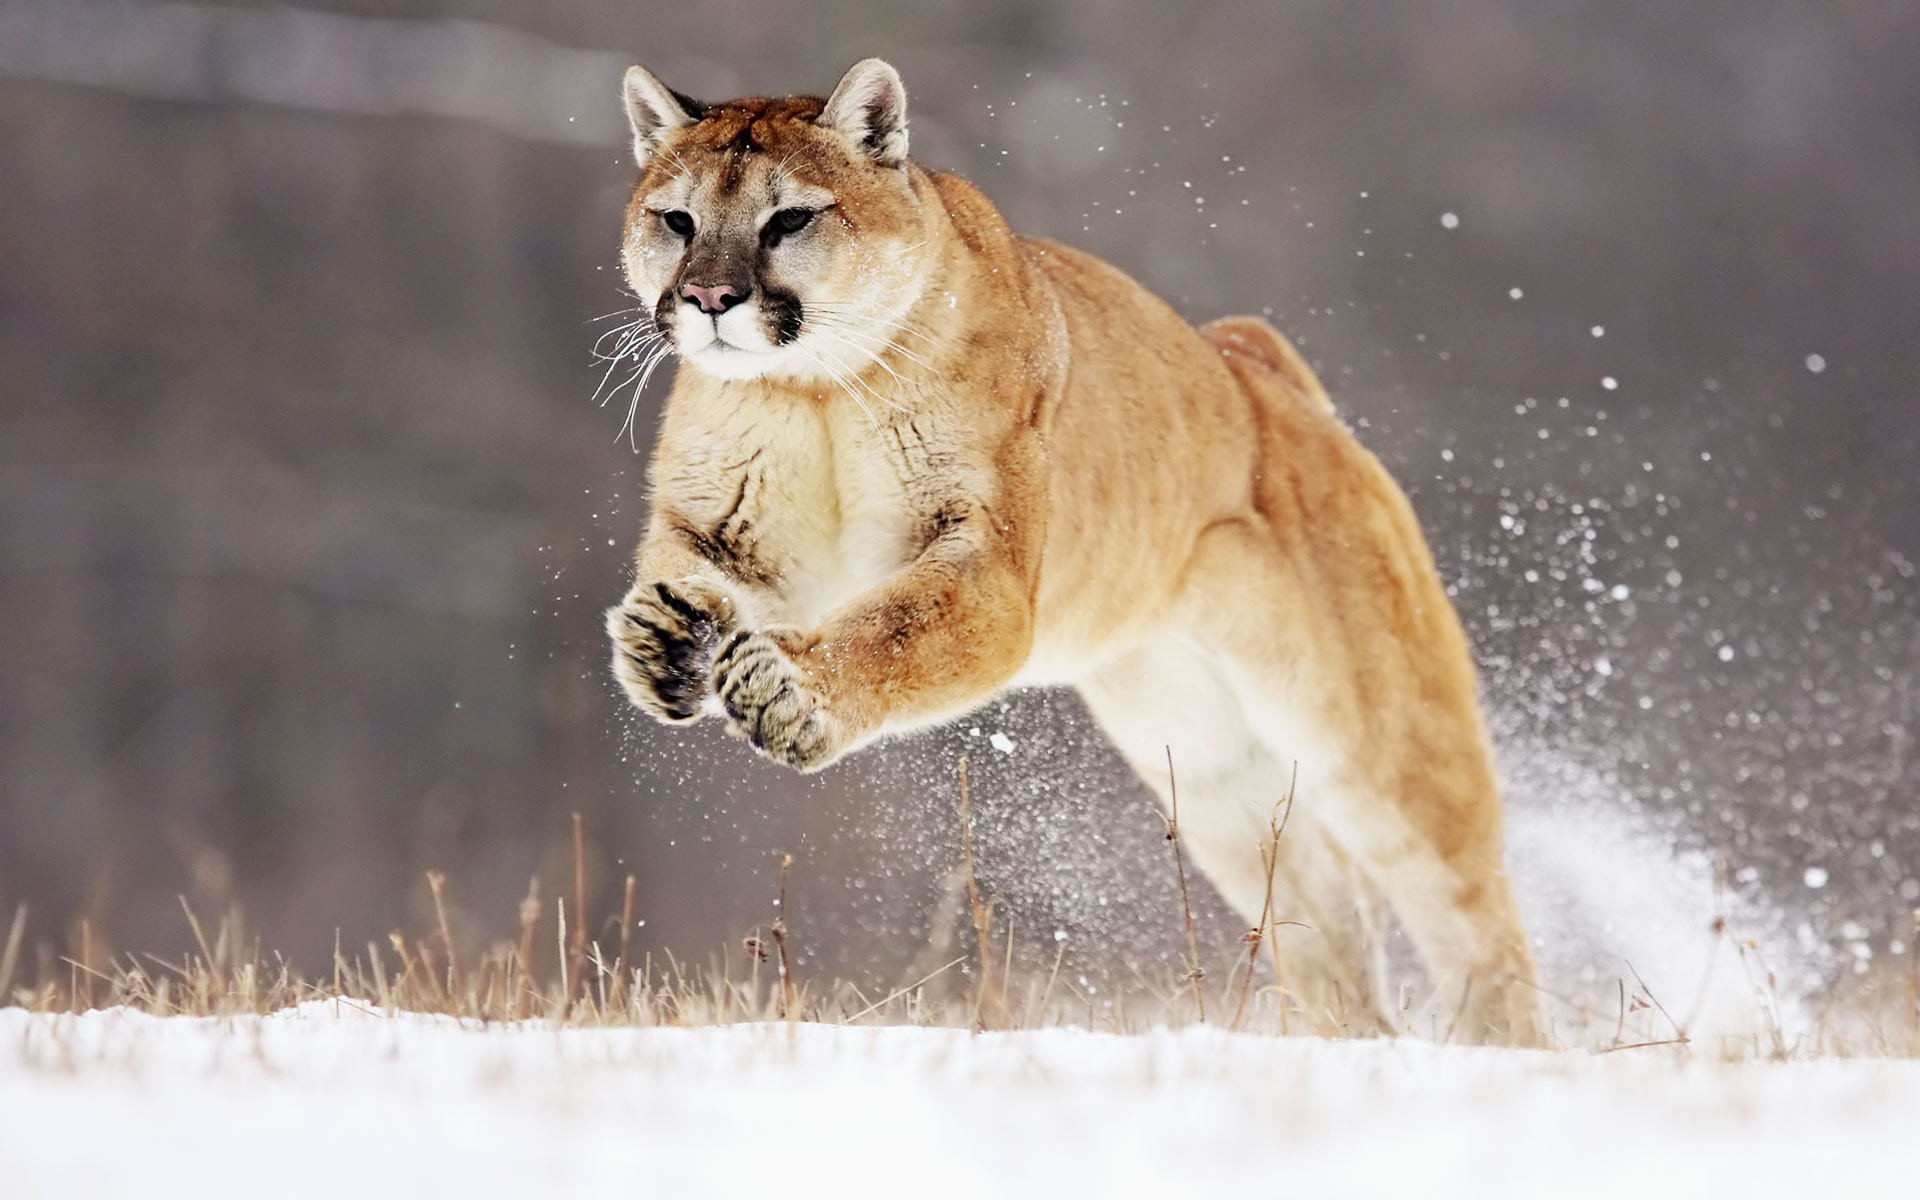 1920x1200 Animal Cats Fresh Desktop Life Mountain Lion 236364 Wallpaper wallpaper